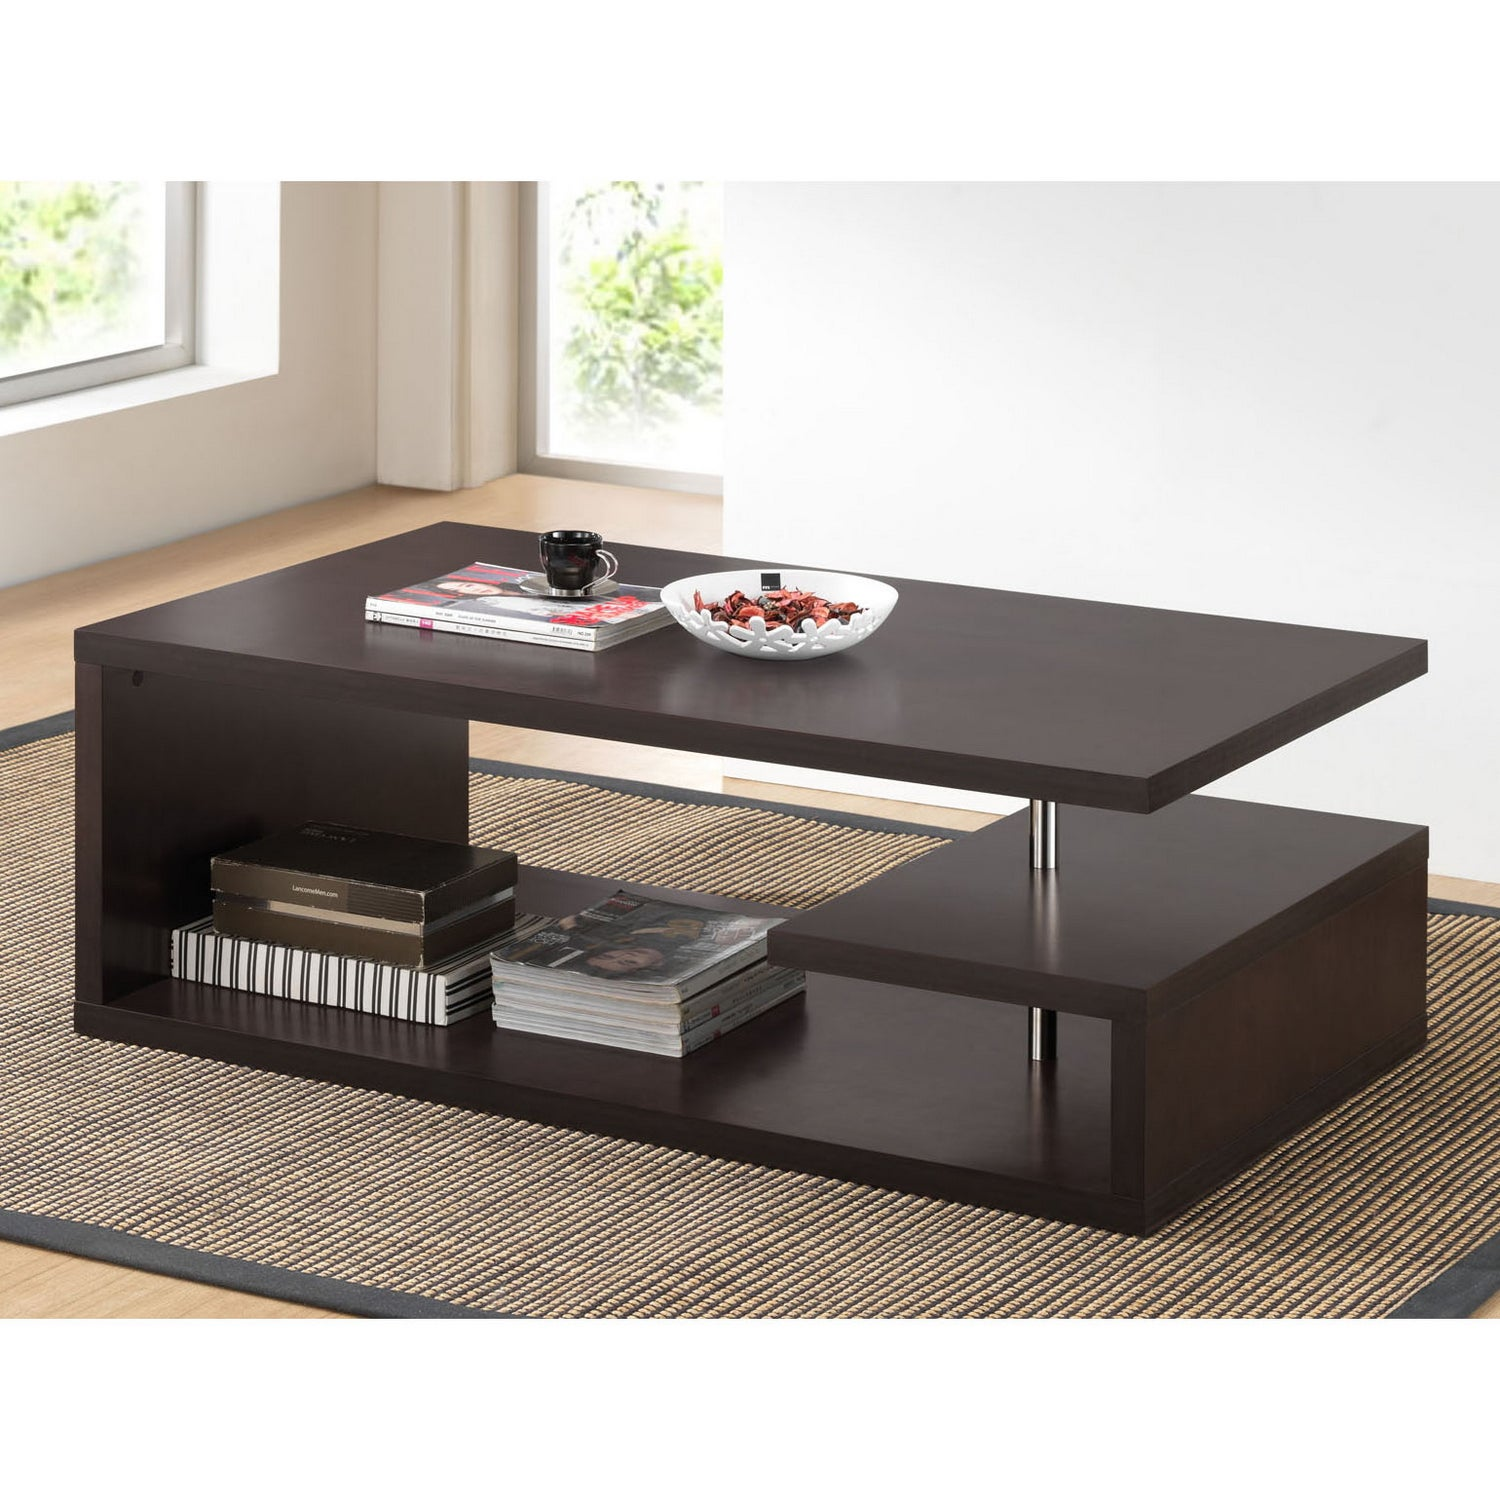 Modern Coffee Table Brown: Shop Baxton Studio Lindy Dark Brown Modern Coffee Table